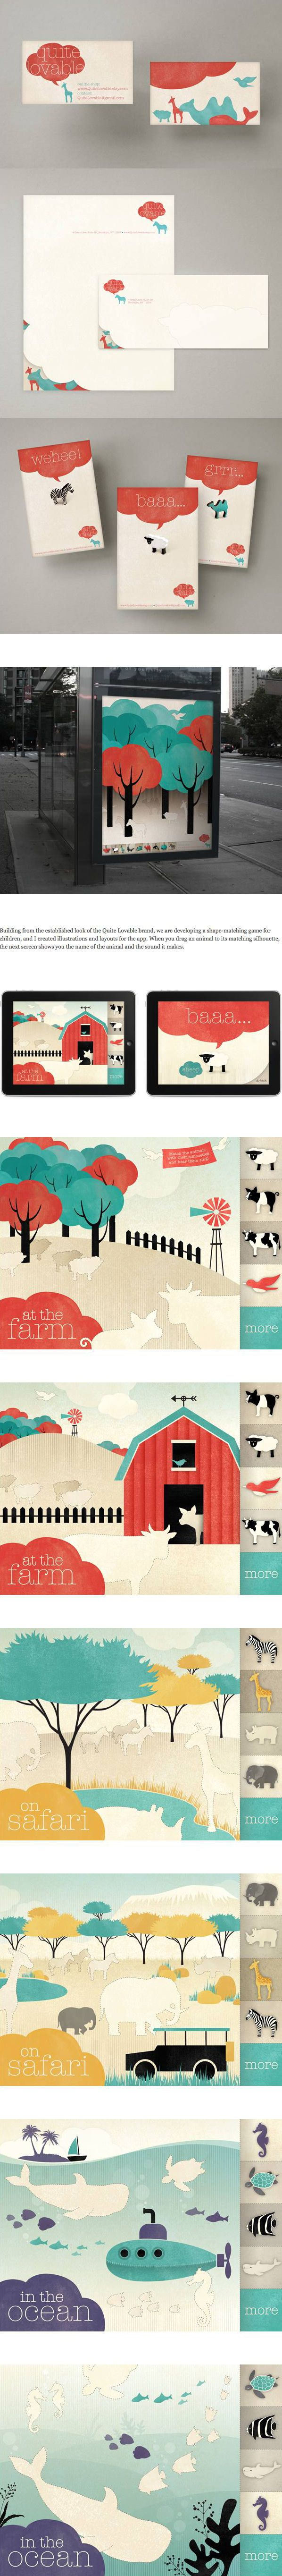 At the farm. Let's all go down to the farm #identity #packaging #branding PD